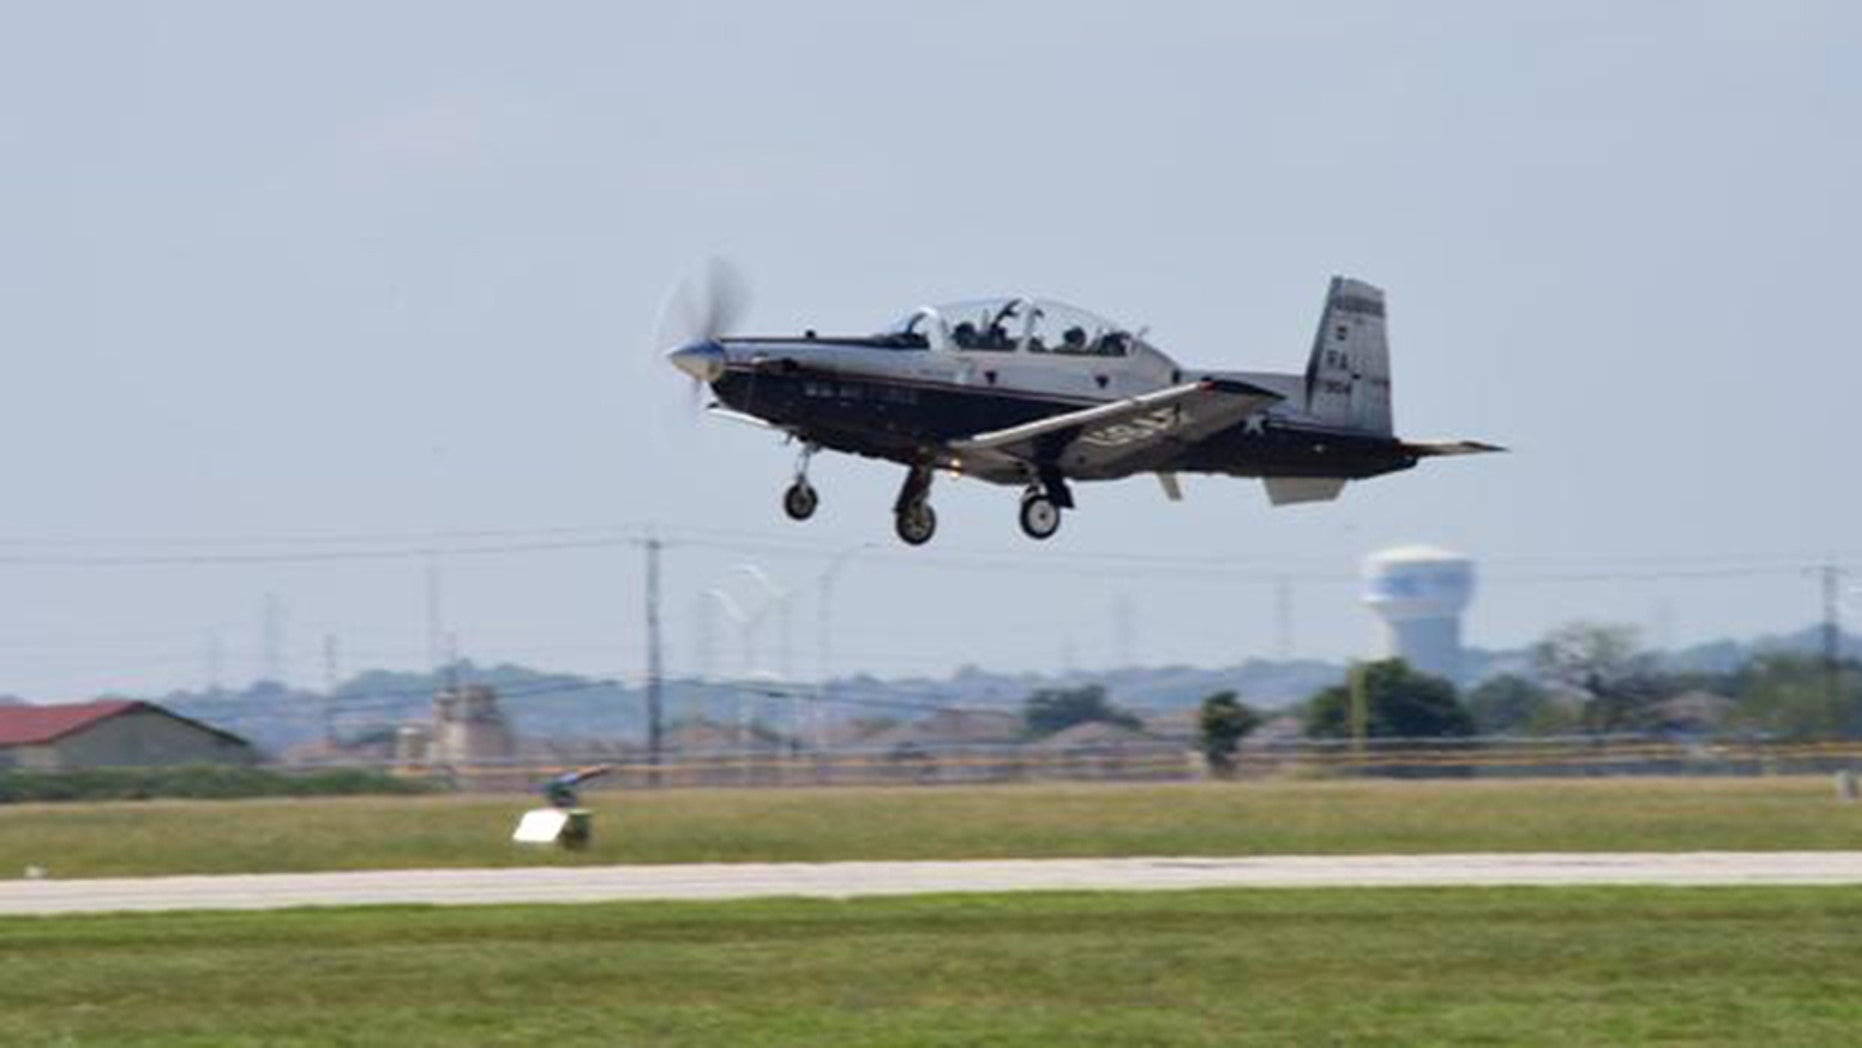 A T-6 Texan trainer from the Joint Base San Antonio-Randolph in Texas crashed roughly 30 miles from the base near Rolling Oaks Mall. The crew ejected safely with minor injuries. There were no civilian casualties.